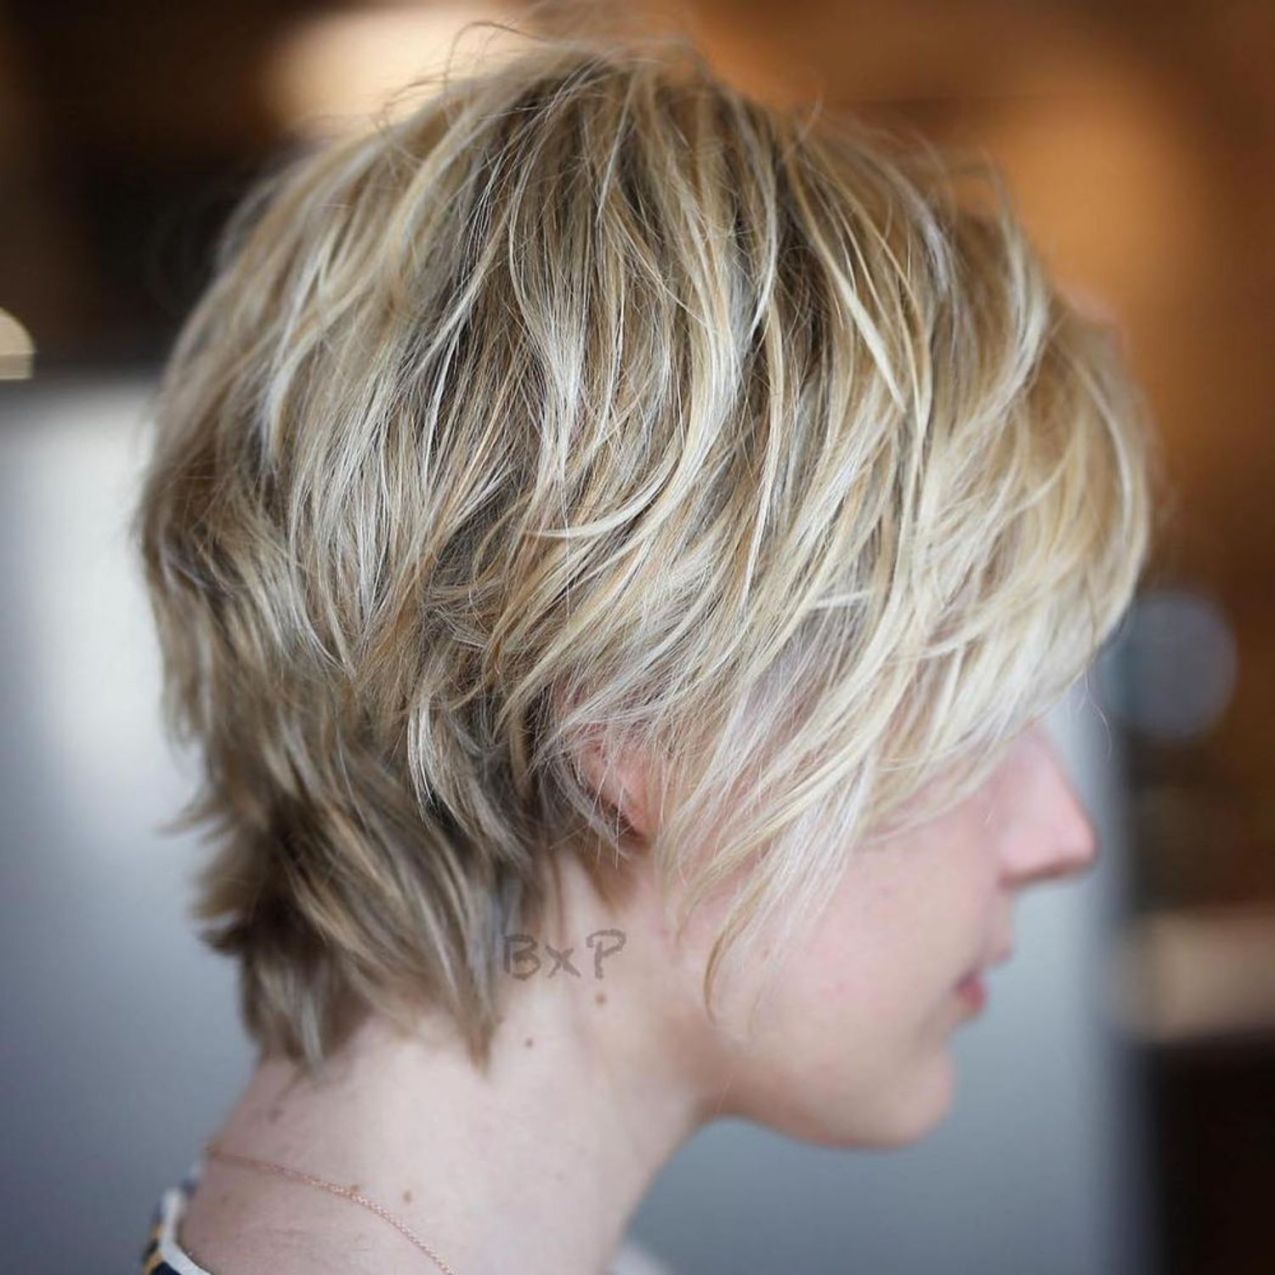 short shaggy spiky edgy pixie cuts and hairstyles hair